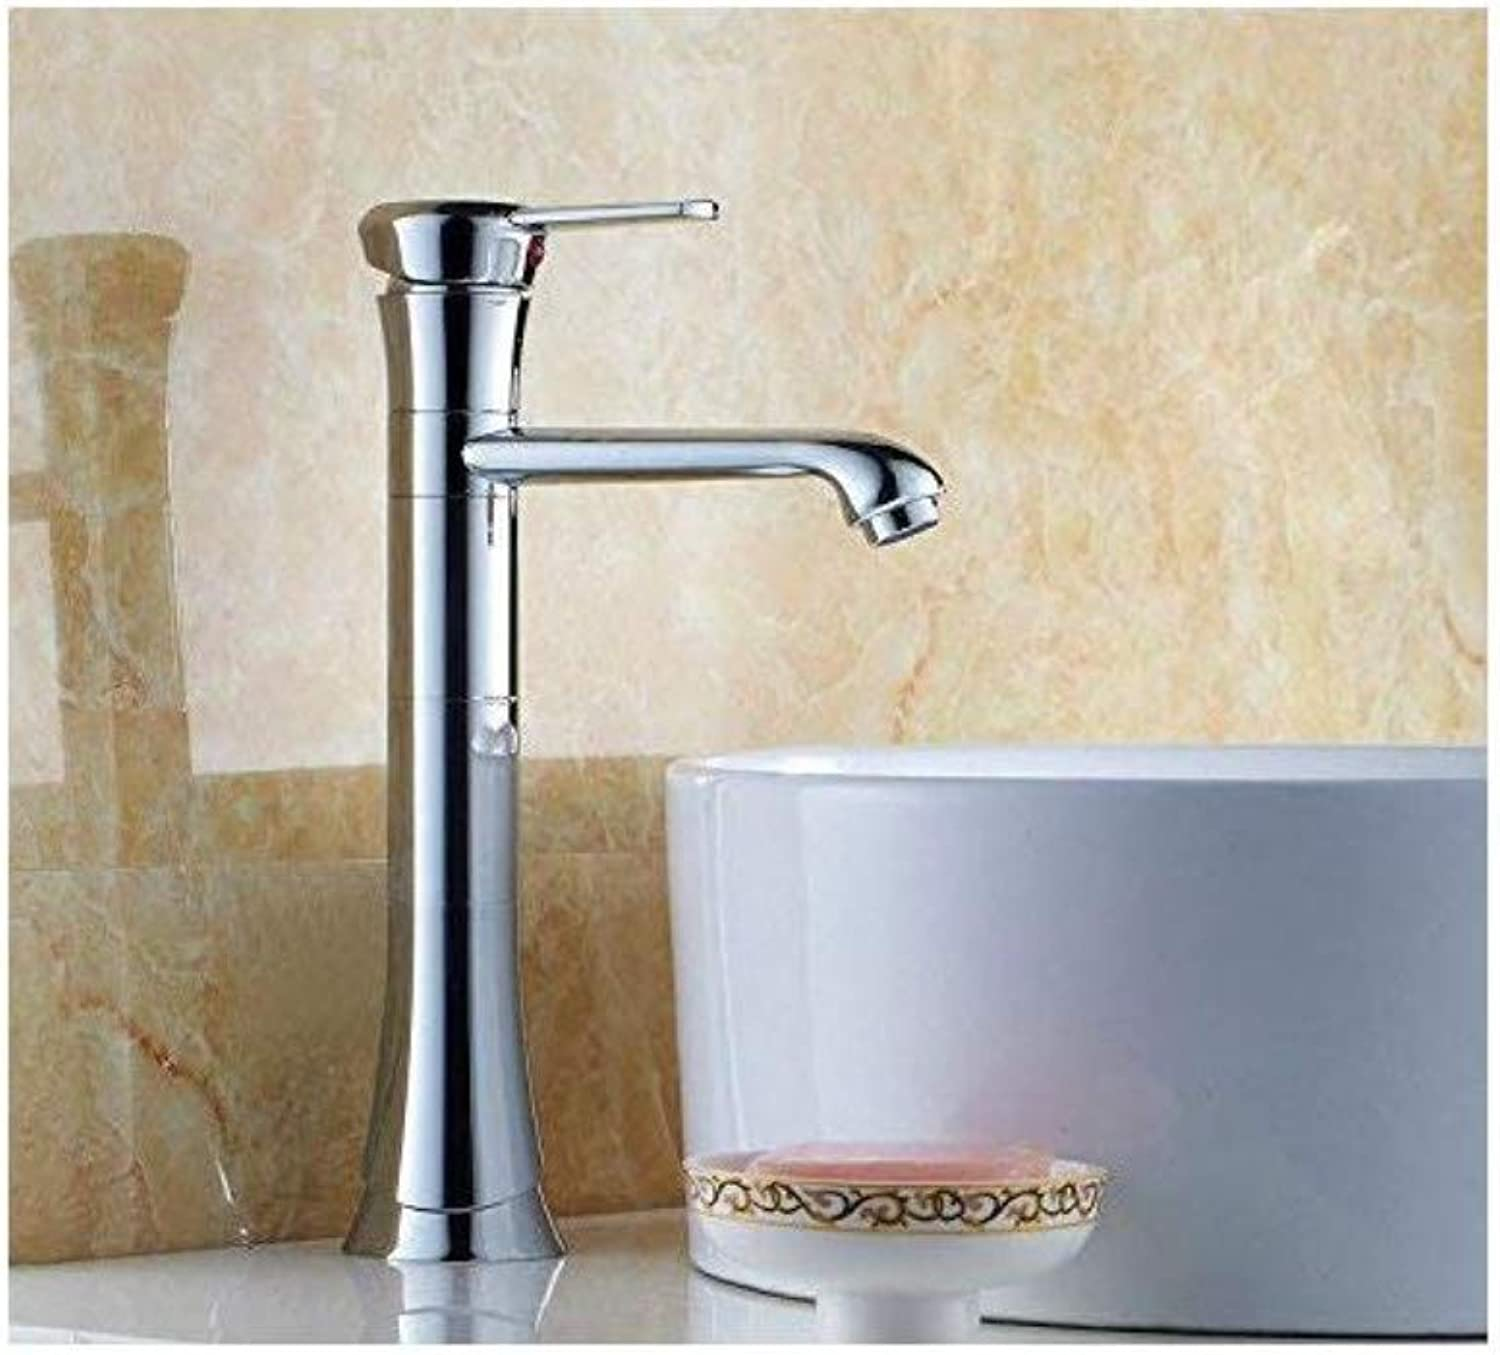 Retro Faucet Mixer Basin Faucet Washbasin All Copper Cold and Hot Water Tap